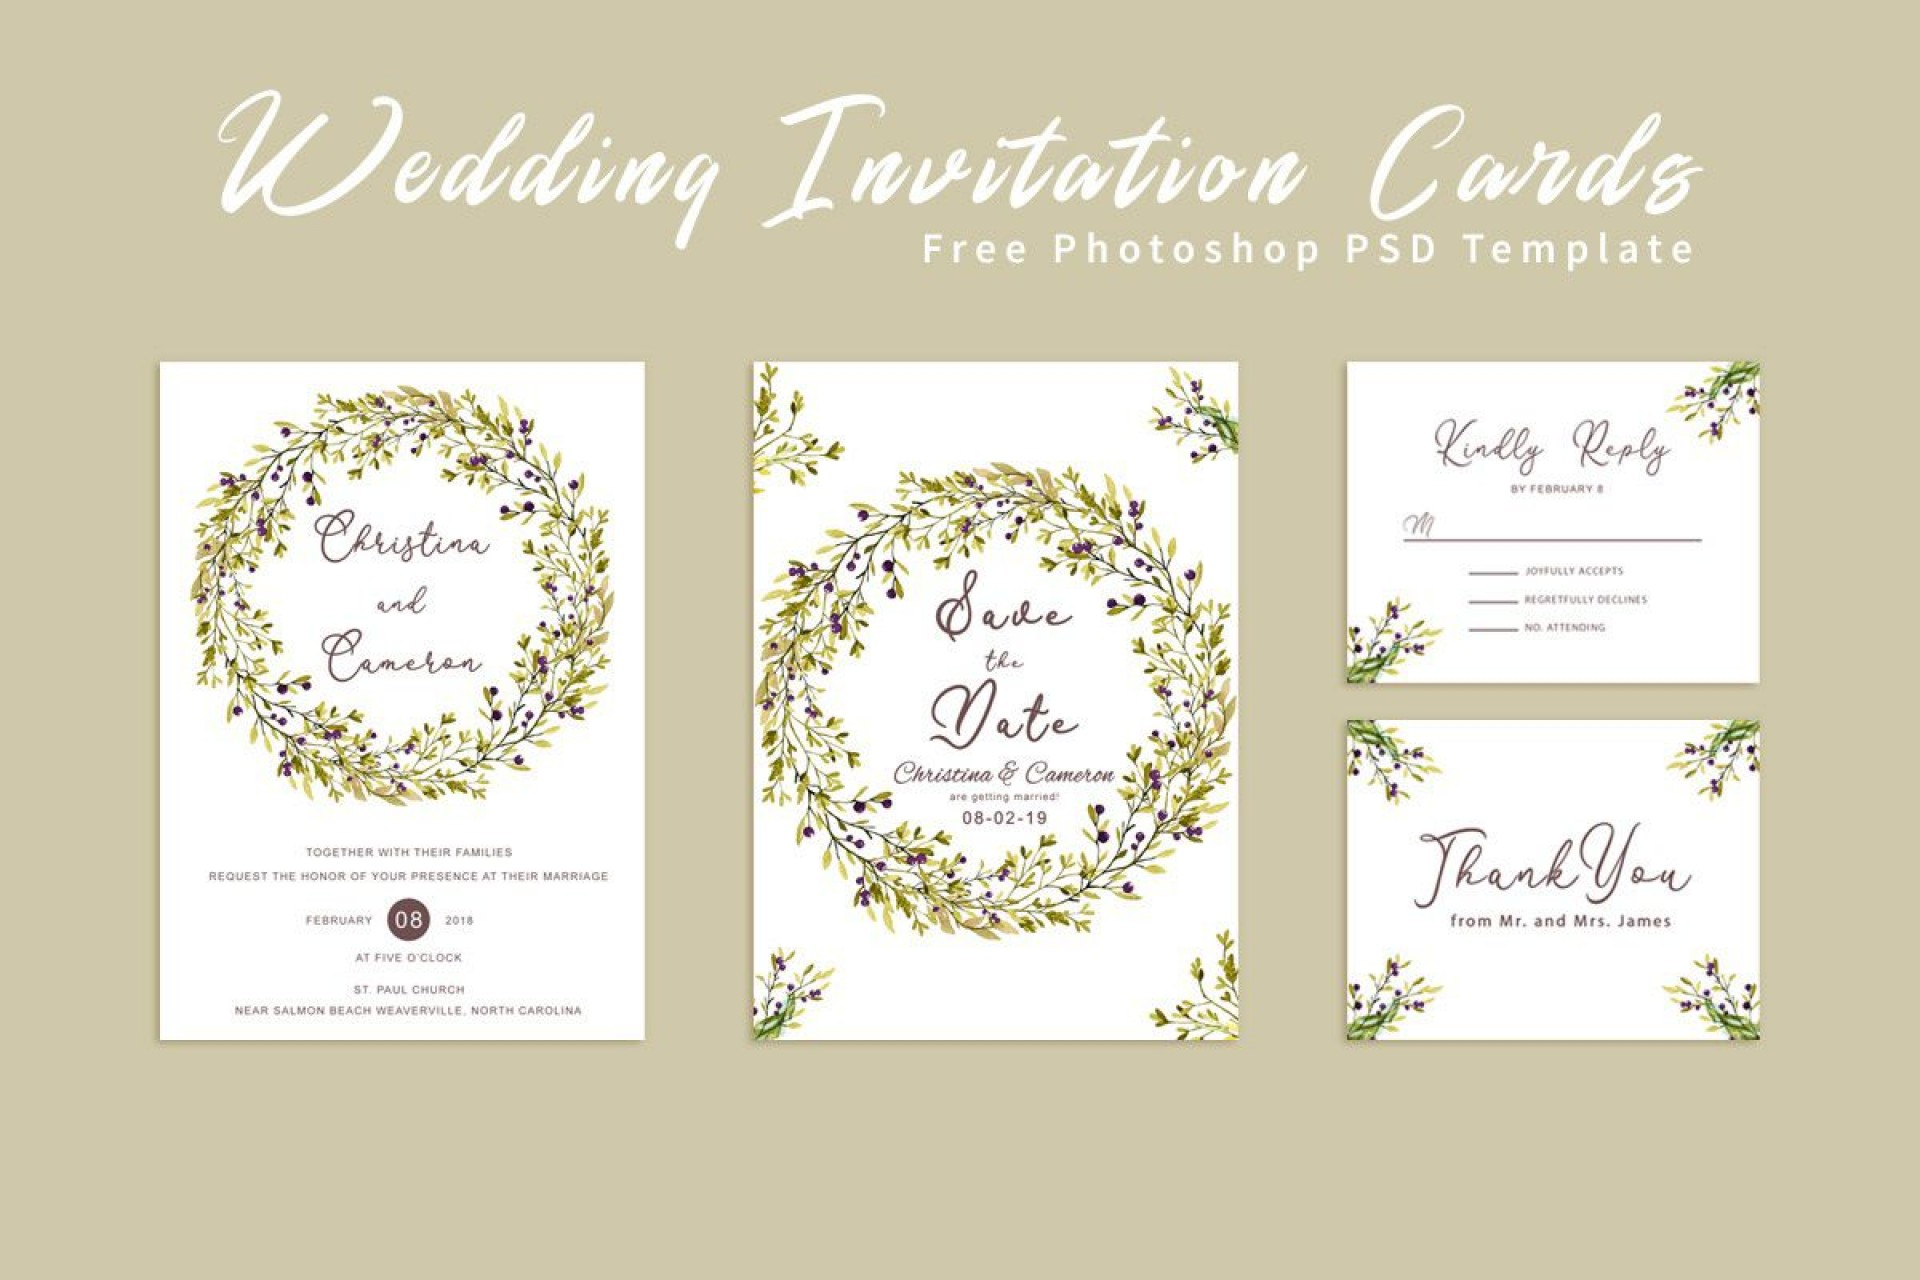 005 Amazing Free Download Invitation Card Design Software Idea  Wedding For Pc Indian1920